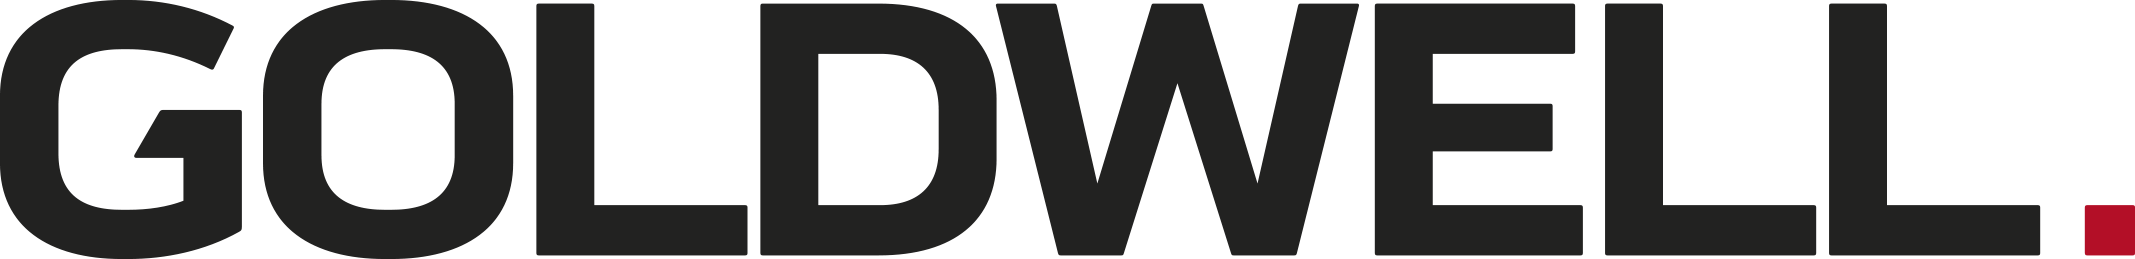 goldwell-logo-1-1.png